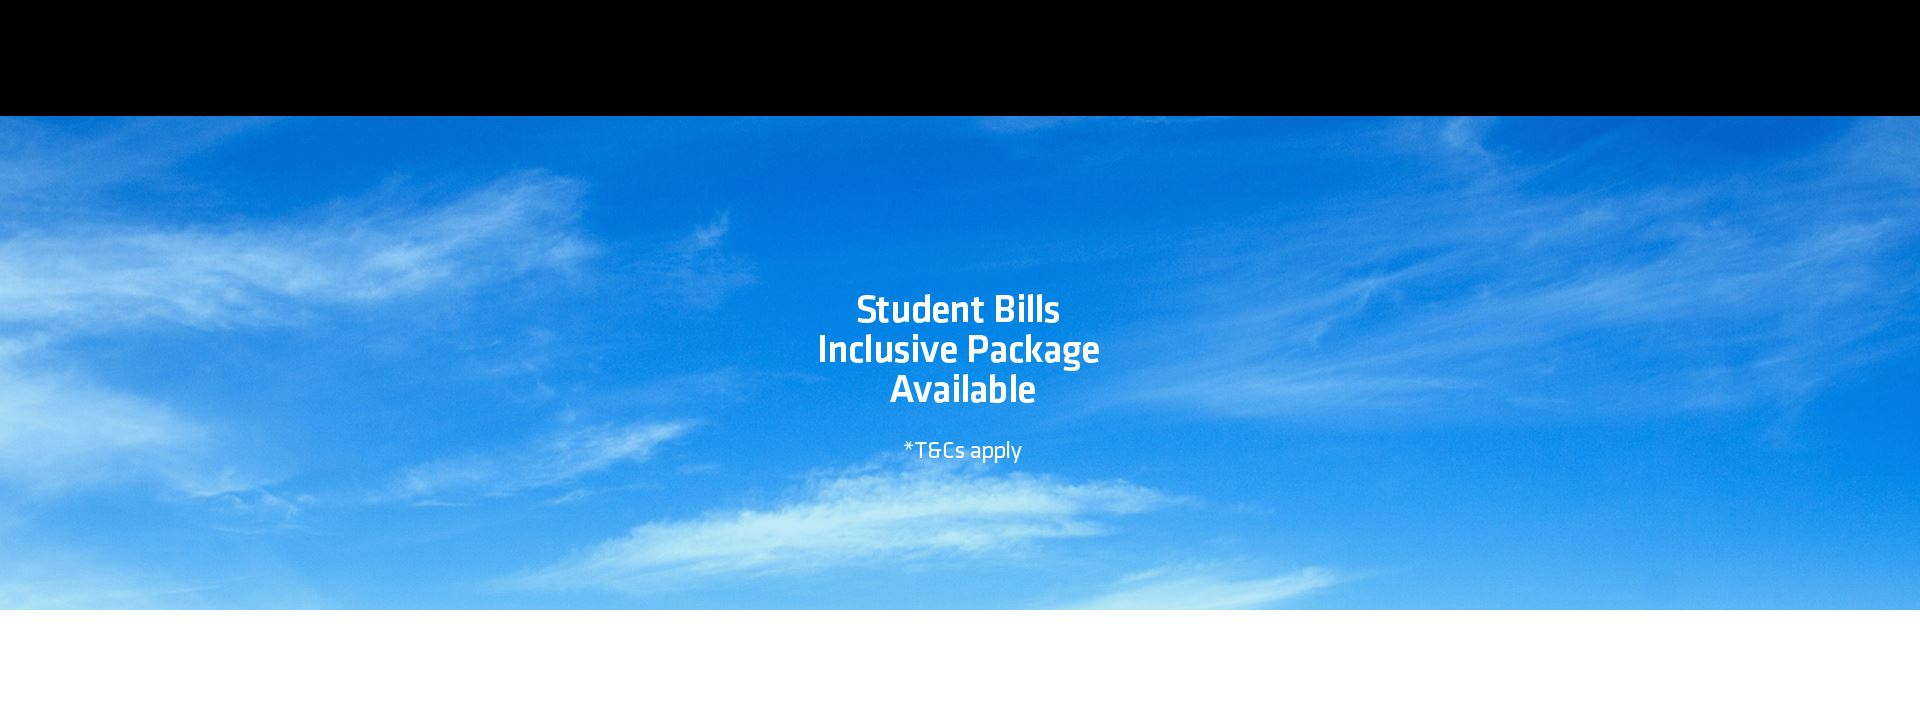 Student Bills Included